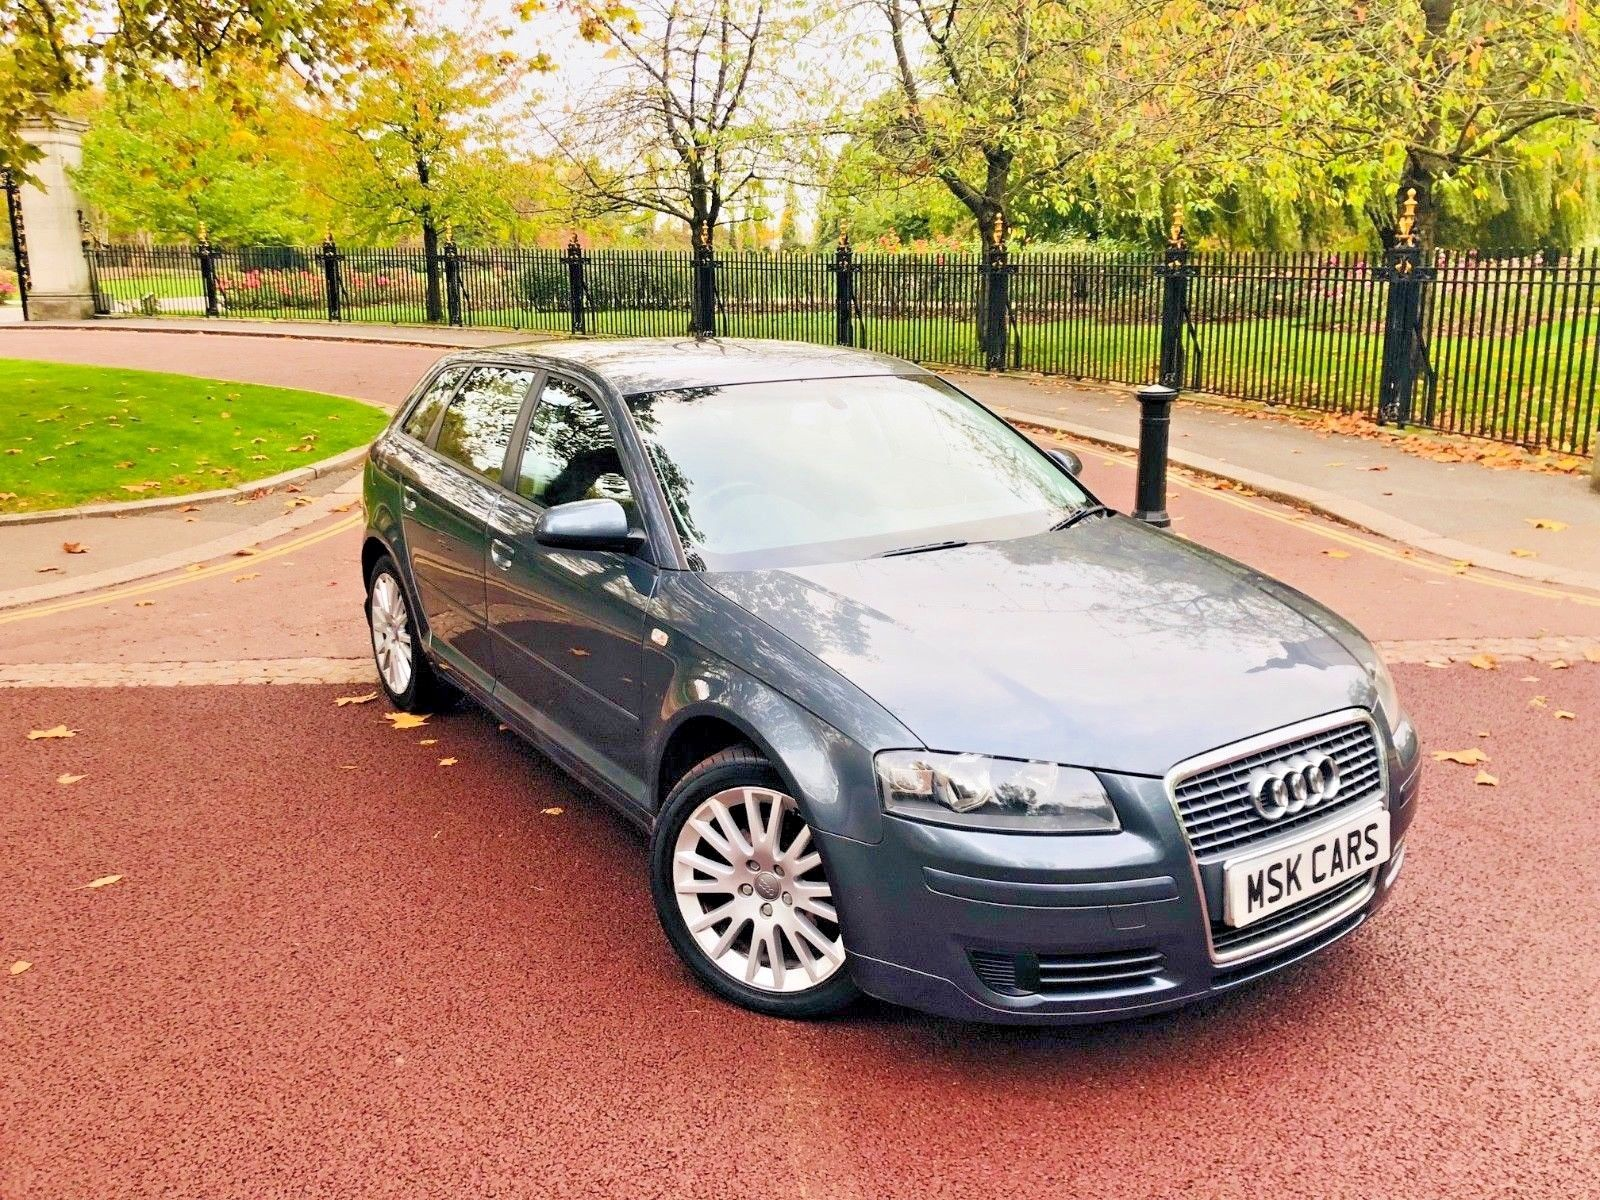 Audi A3 presented in the factory Graphite Grey with an Immaculate Interior 5 door